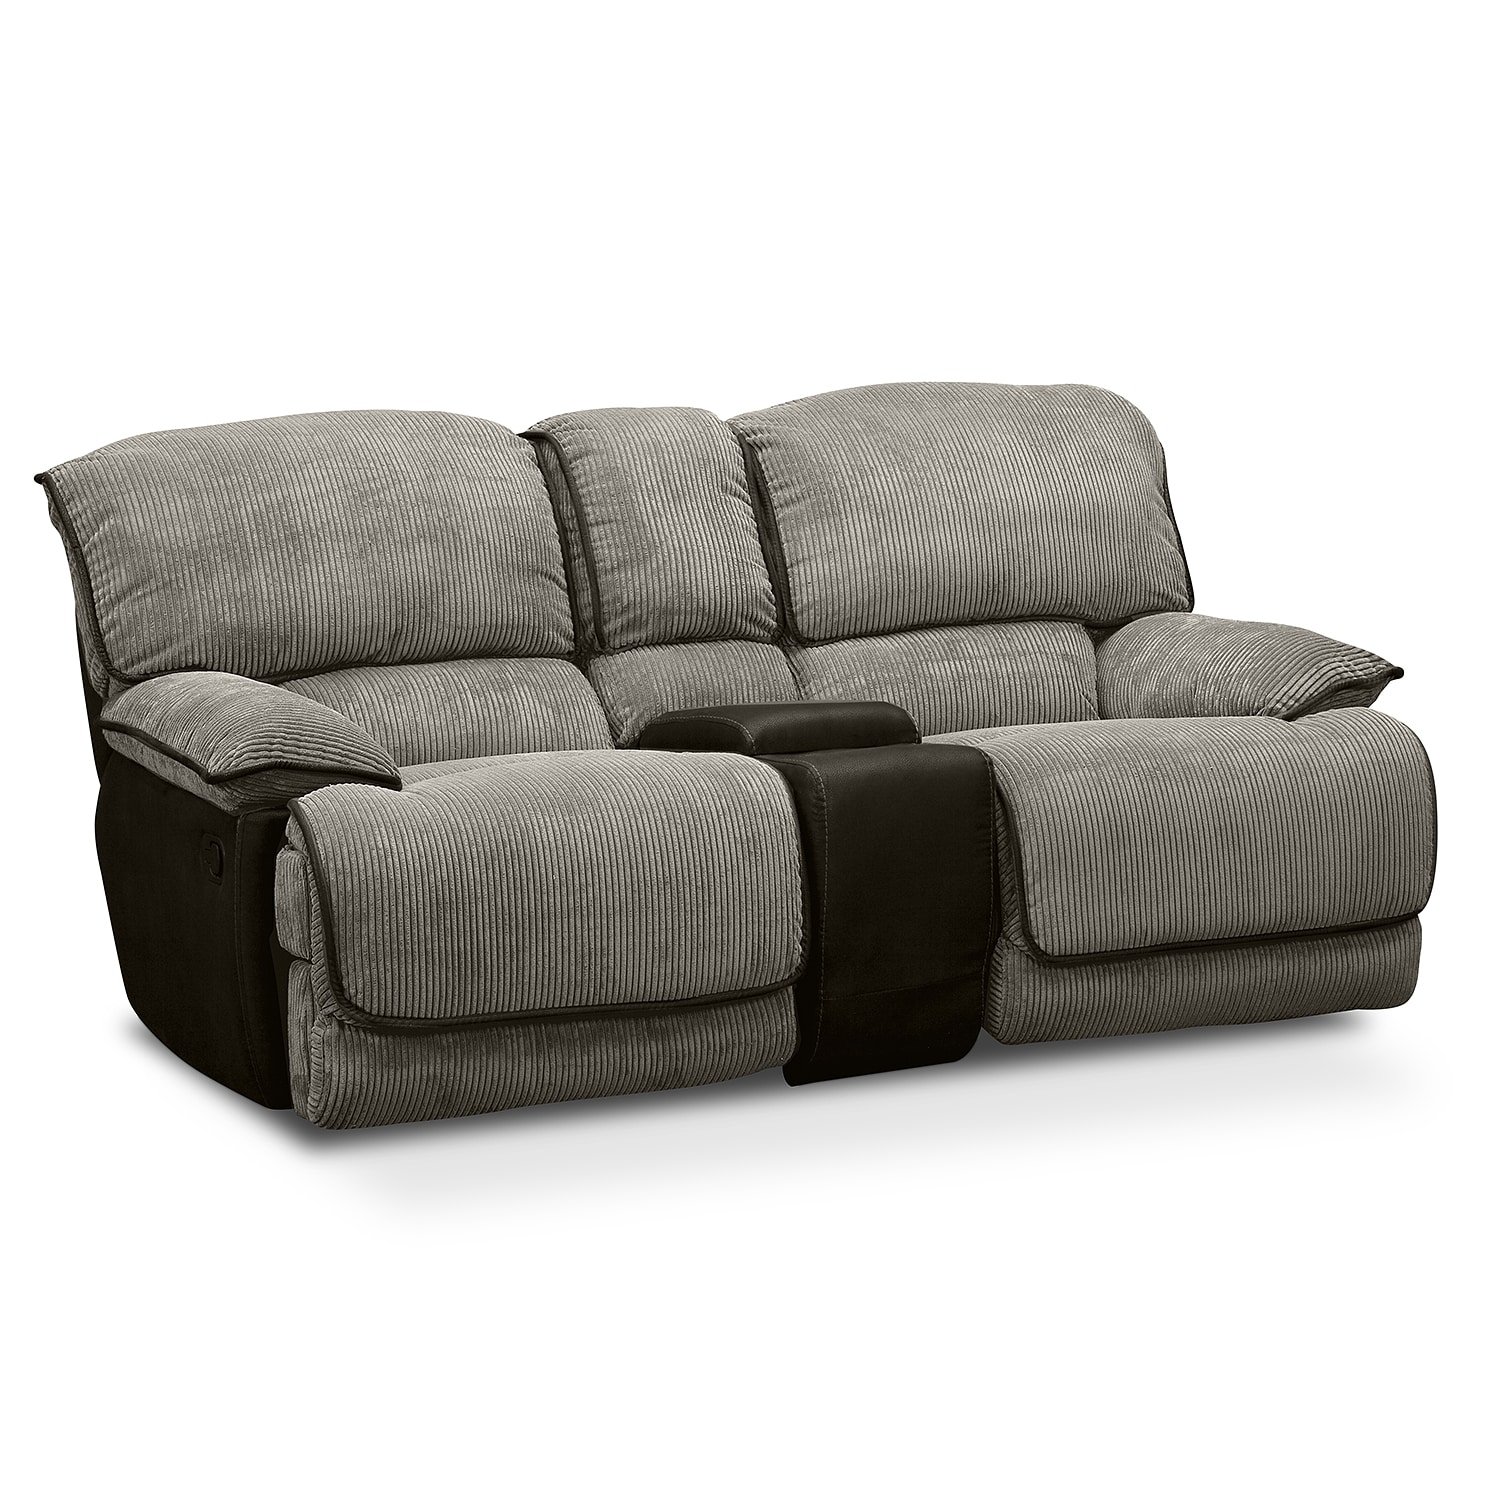 Laguna Gliding Reclining Loveseat Steel American  : 270251 from www.americansignaturefurniture.com size 1500 x 1500 jpeg 726kB